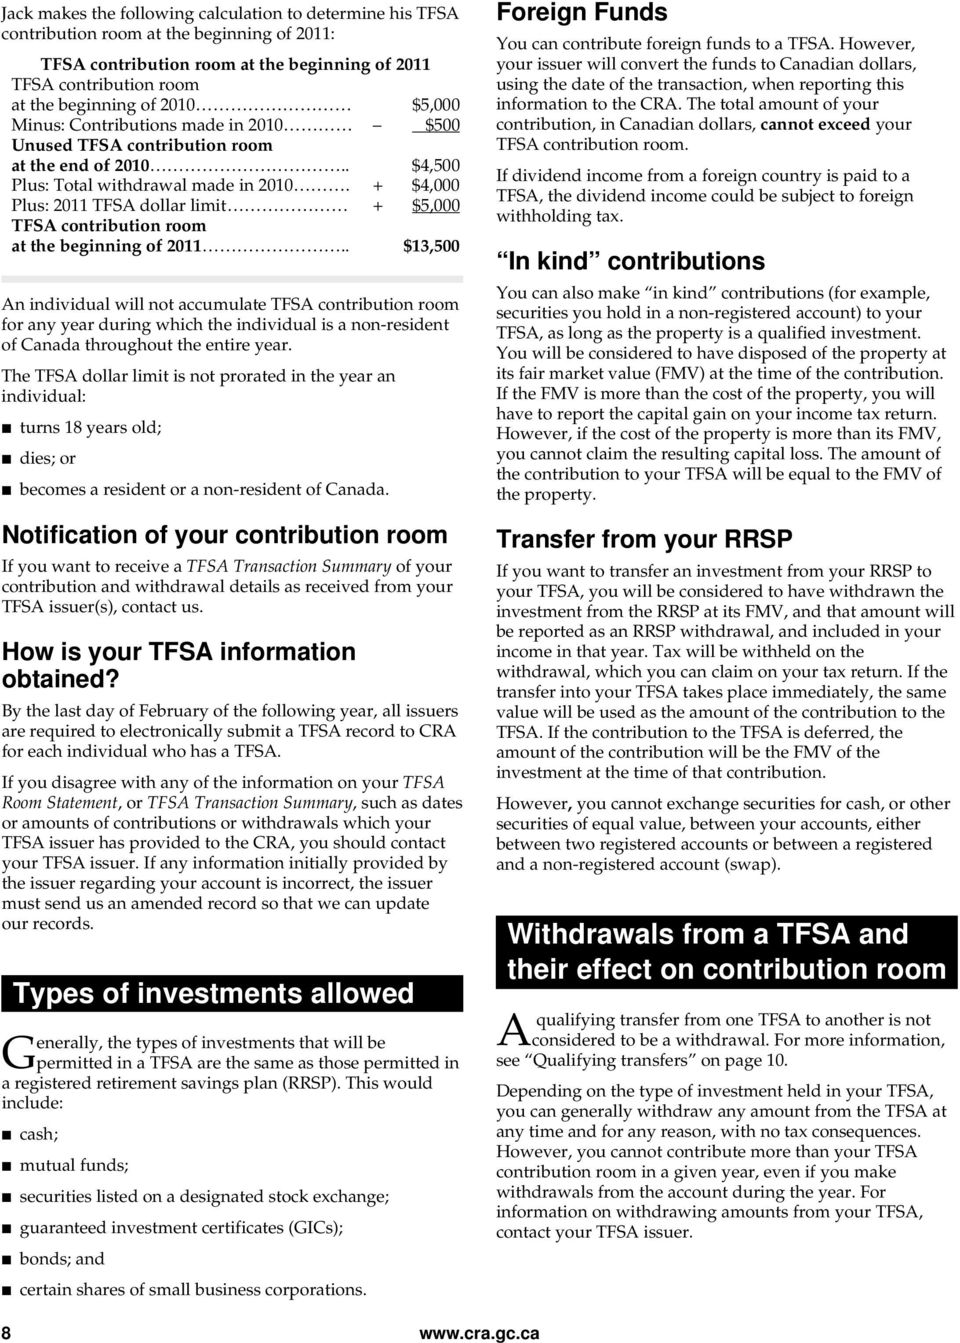 Tax-Free Savings Account (TFSA), Guide for Individuals - PDF